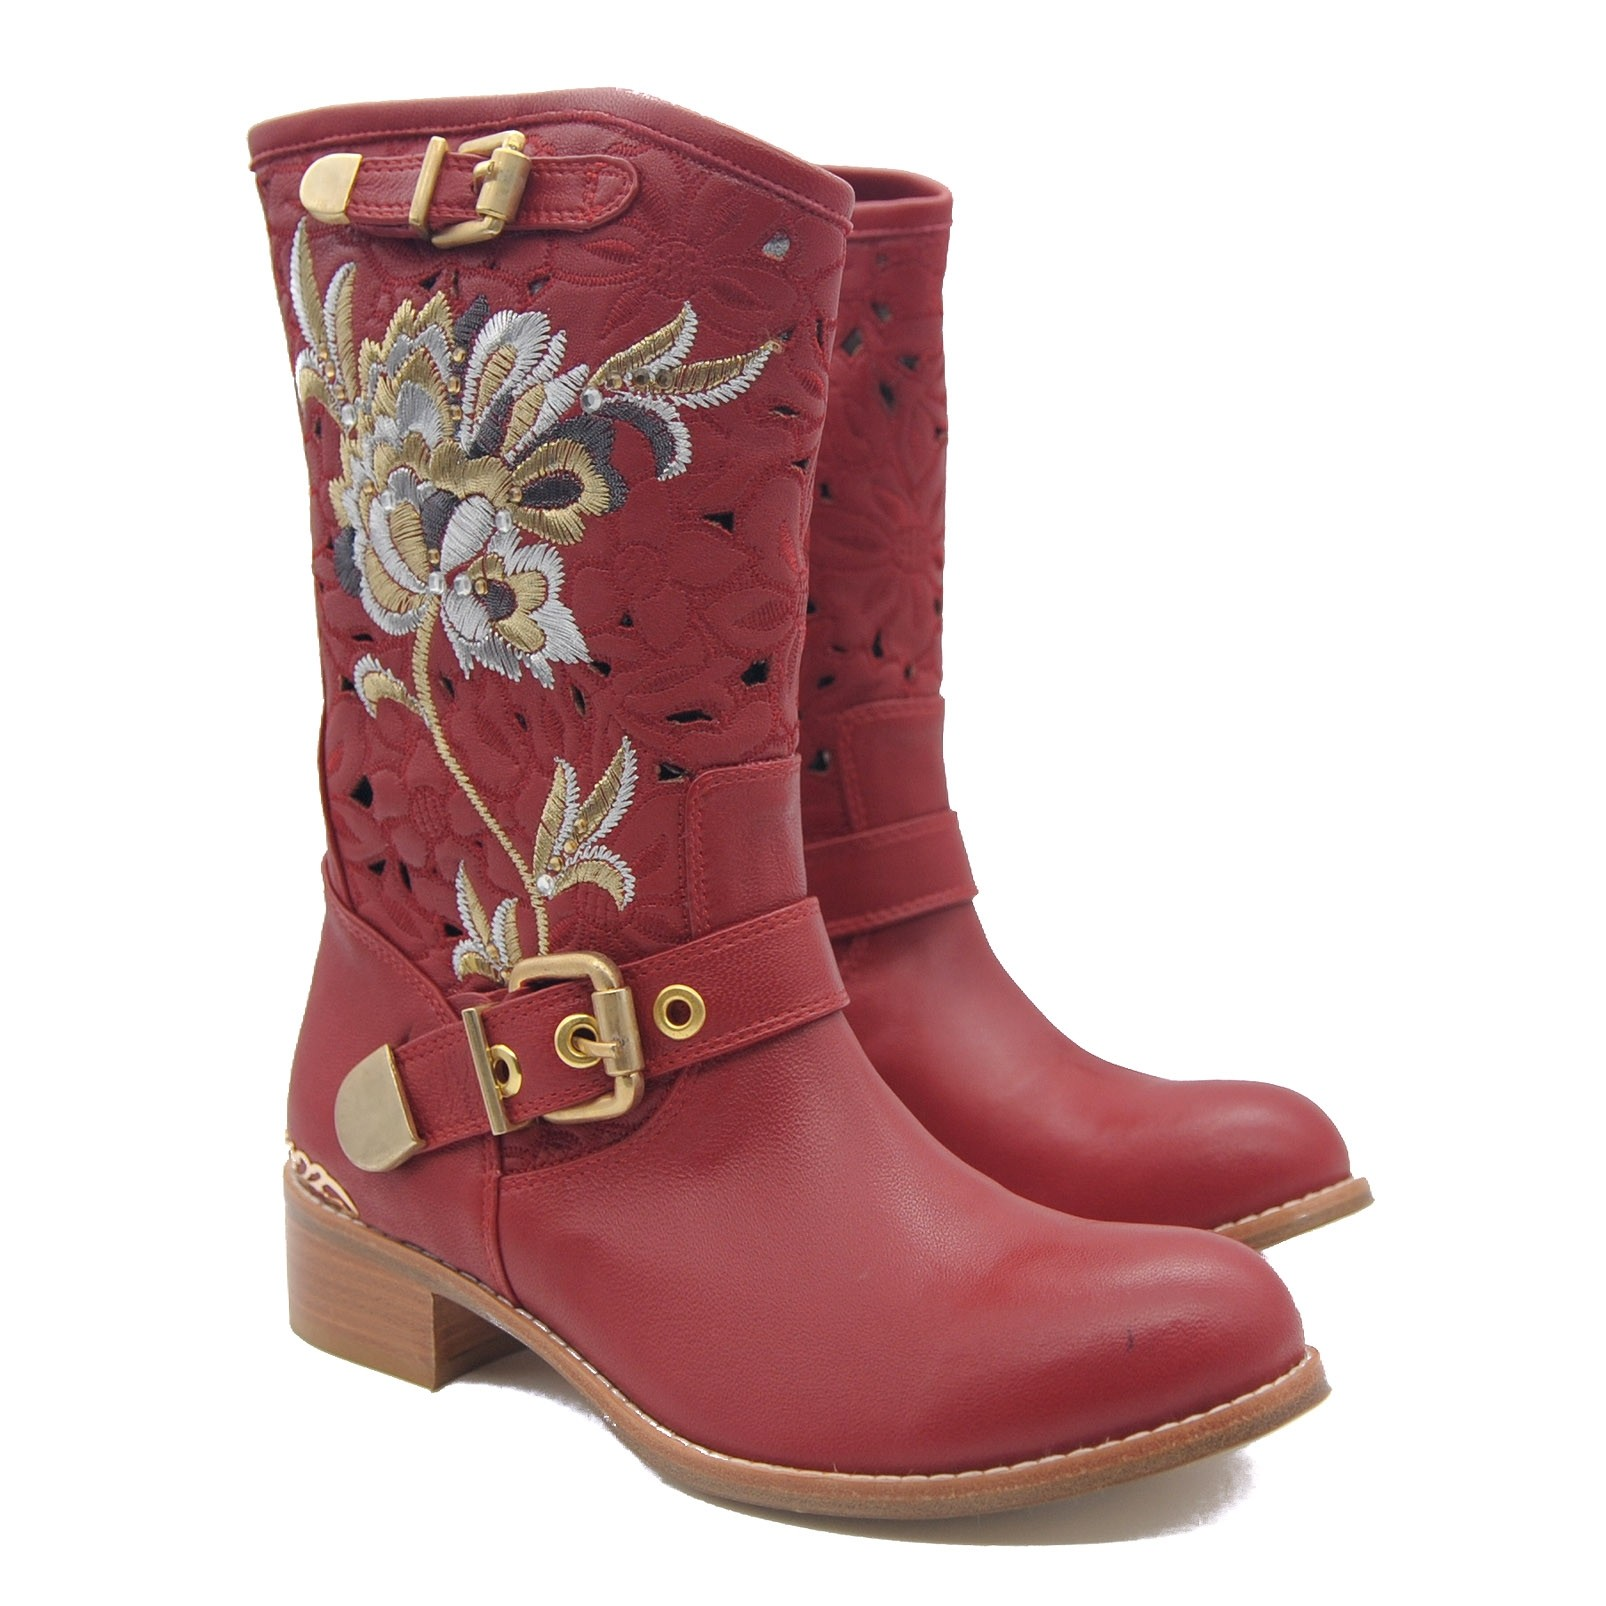 Goody2Shoes Flat Heel Red Leather Calf Length Boots with Embroidered Flower